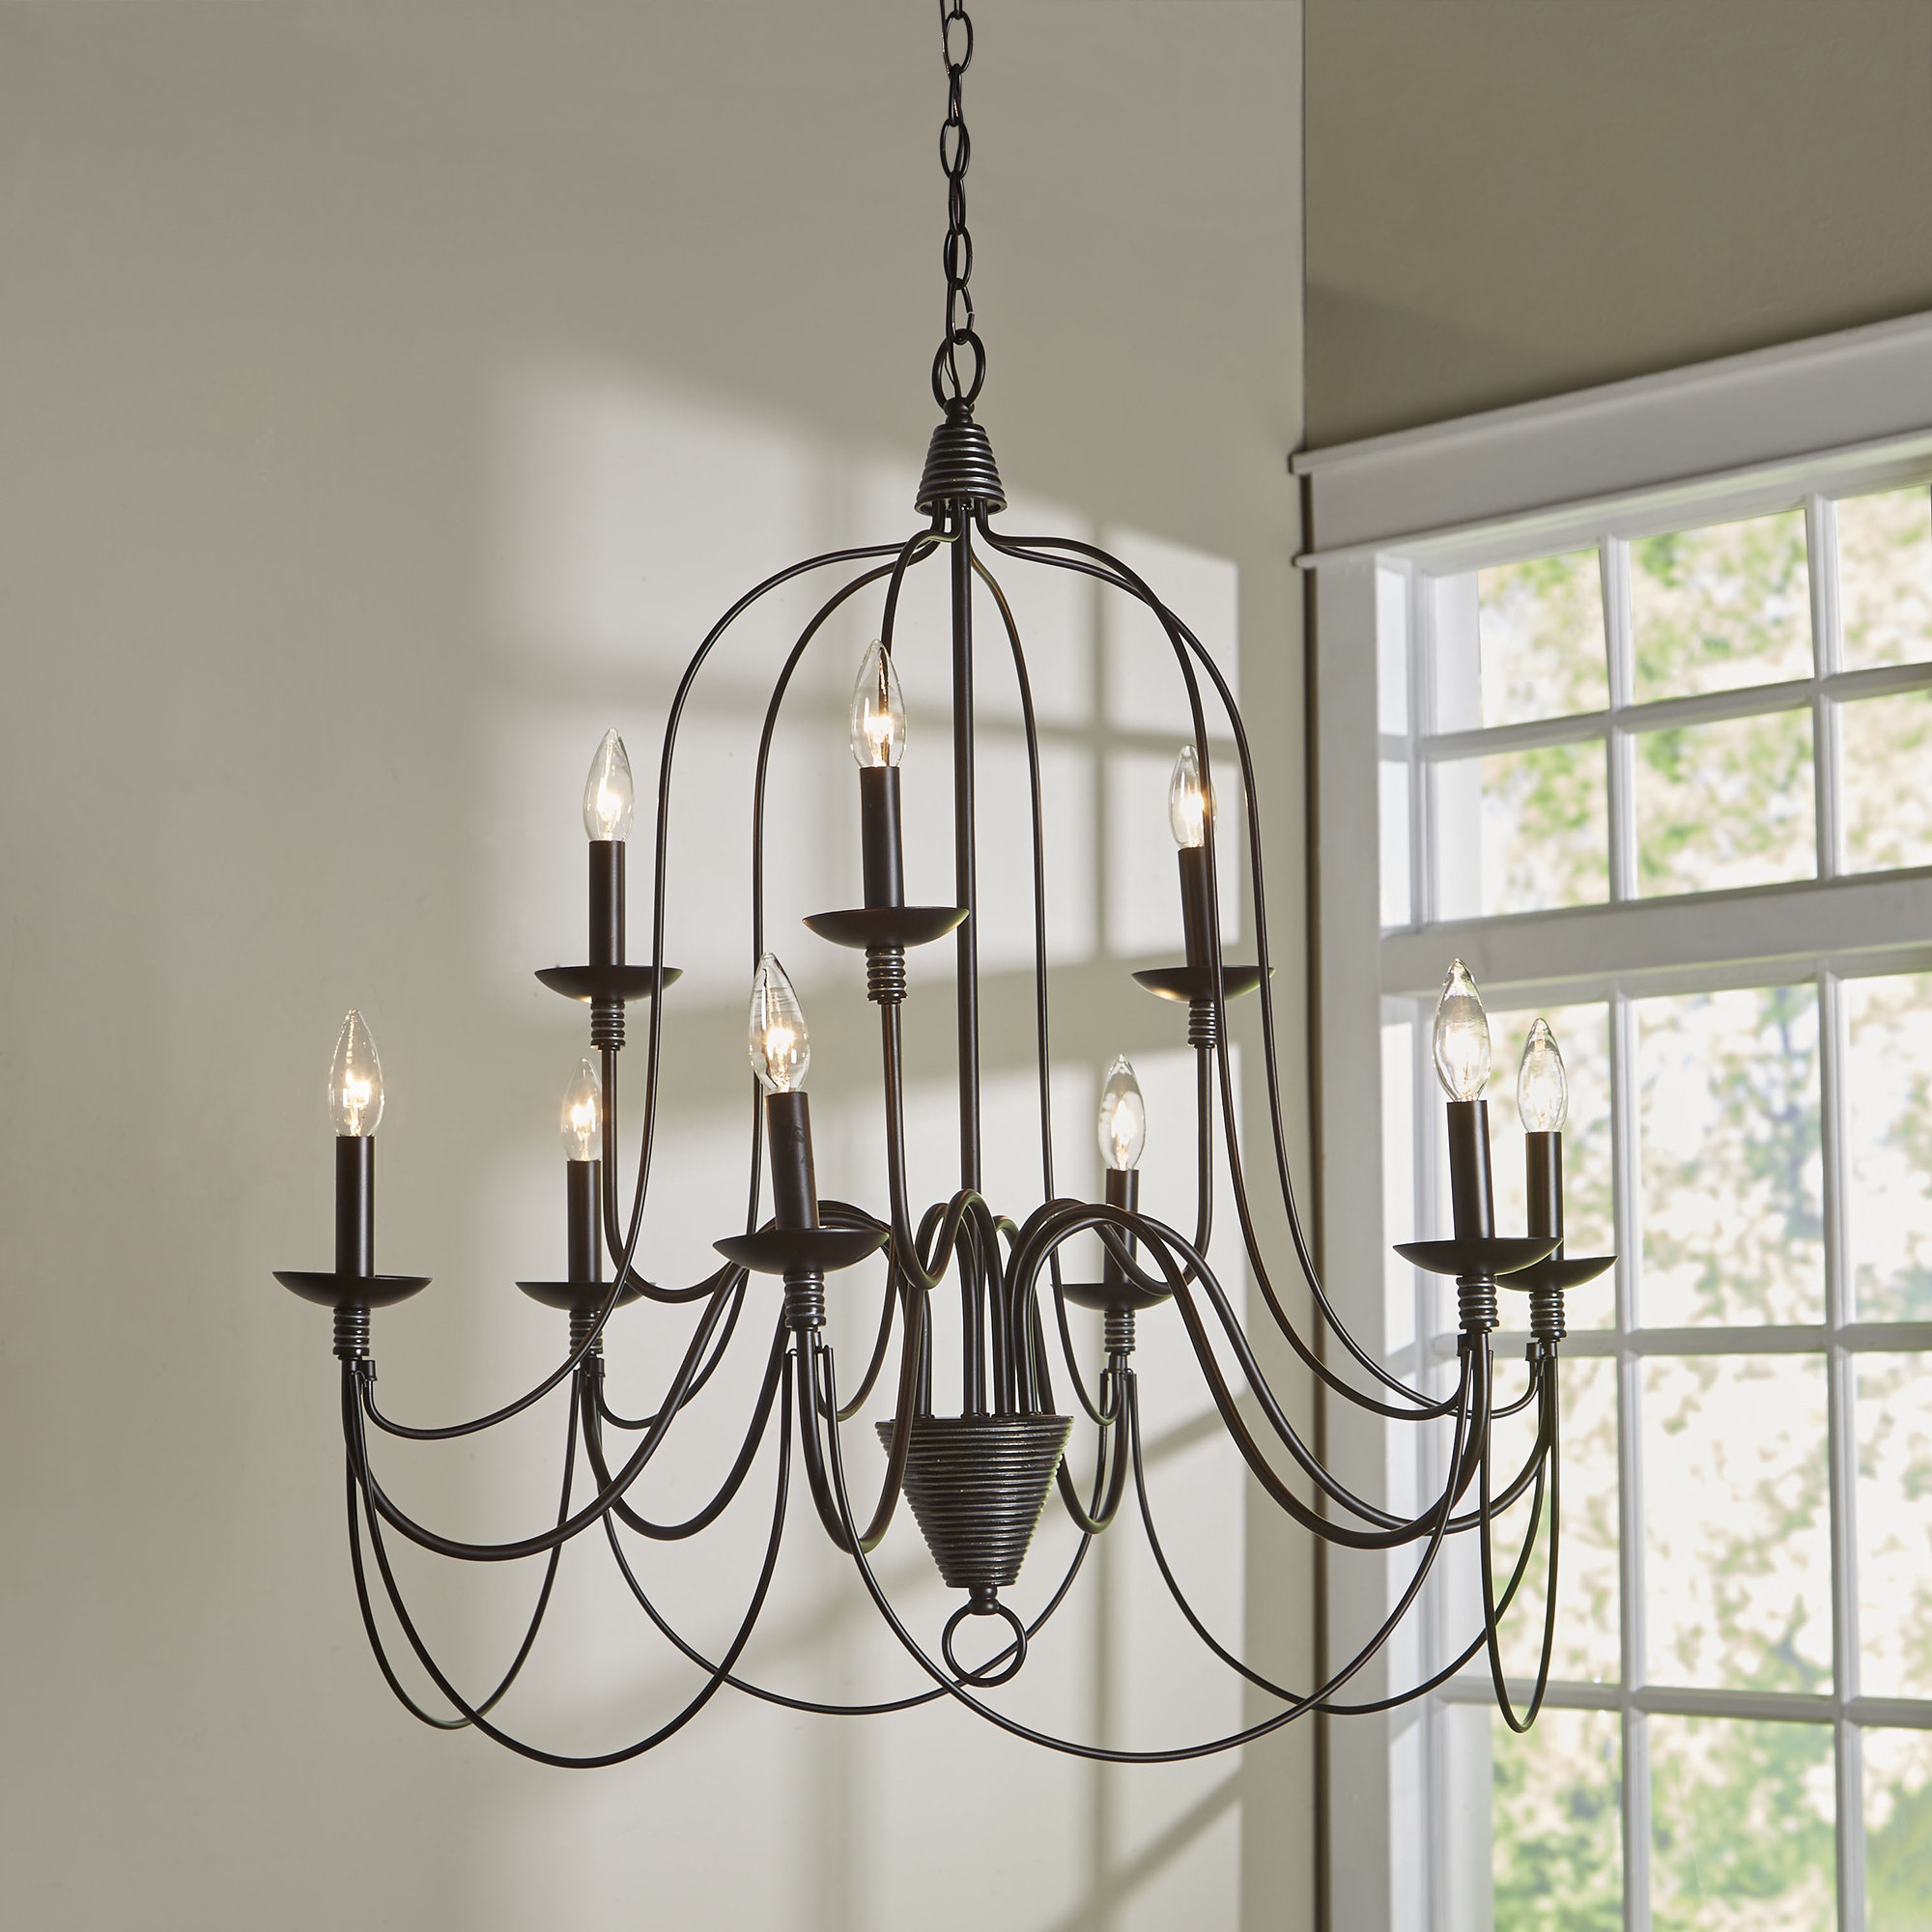 Diaz 6 Light Candle Style Chandeliers With Newest Watford 9 Light Candle Style Chandelier (Gallery 19 of 25)